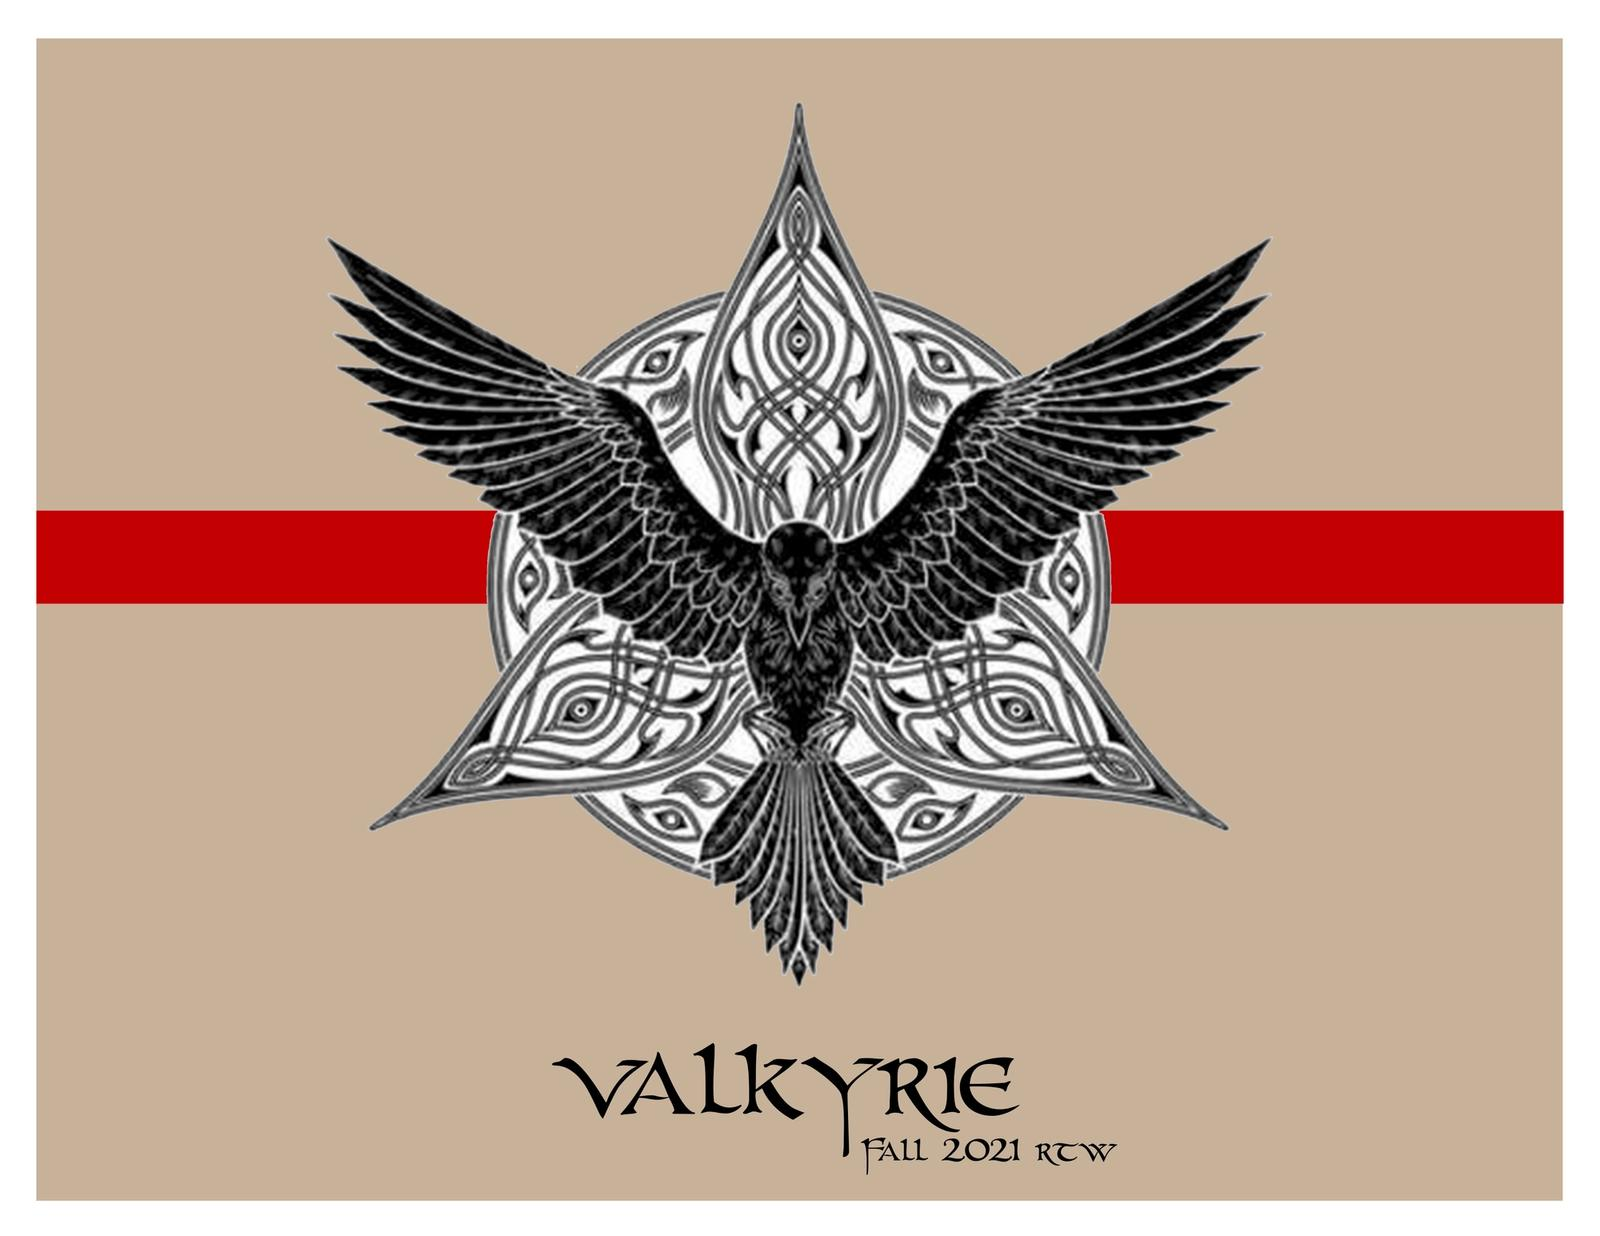 This collection was inspired by the norse mythology of Valkyries. I imagine my target customer a Valkyrie undercover in the modern world.